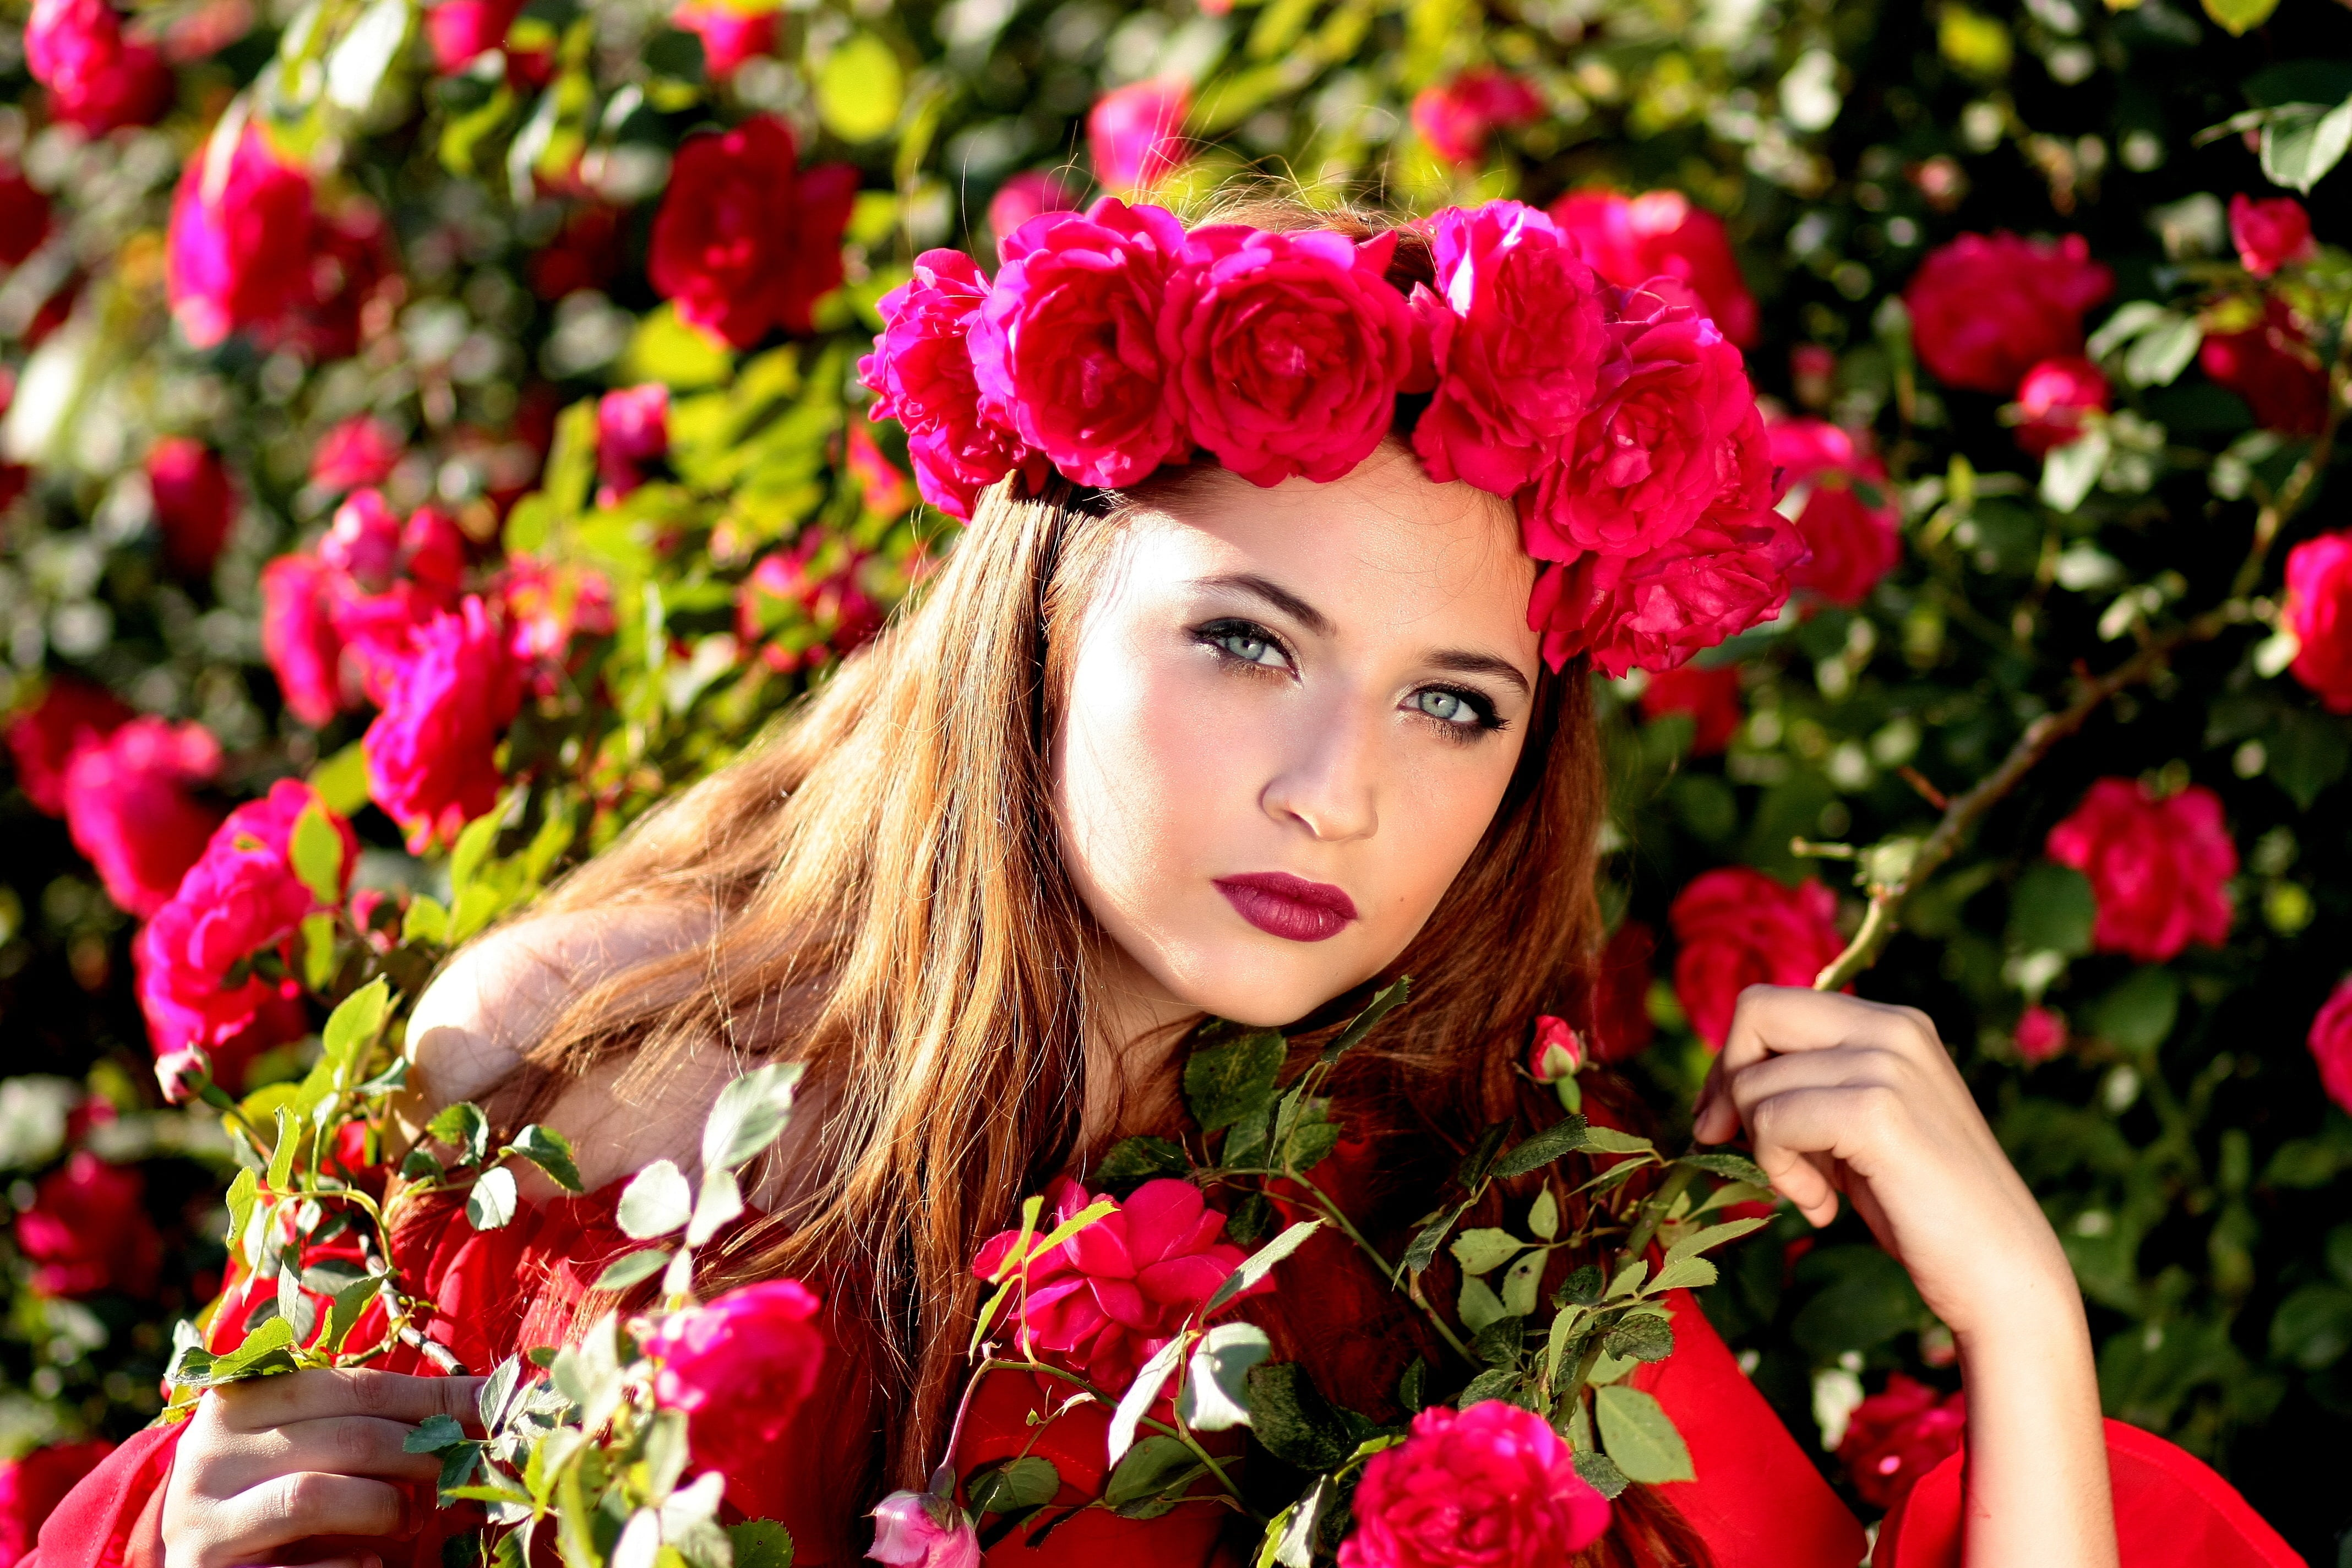 Woman Wearing Red Rose Headband Posing In Red Rose - Beautiful Girl Red Roses , HD Wallpaper & Backgrounds